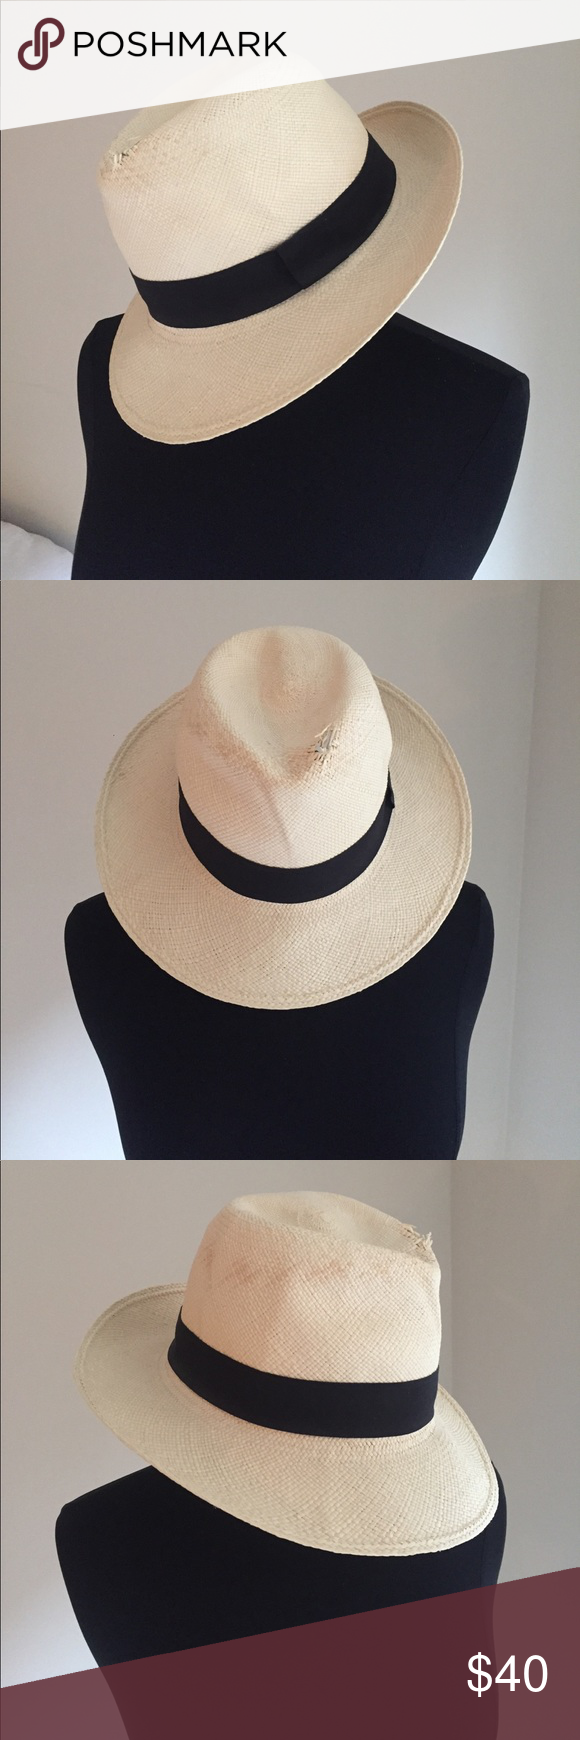 8b978d73a029c Authentic Panama Hat by J Crew Authentic Panama Hat (see fourth photo).  Worn once. Natural cream color. Black fabric stripe. Gorgeous weave